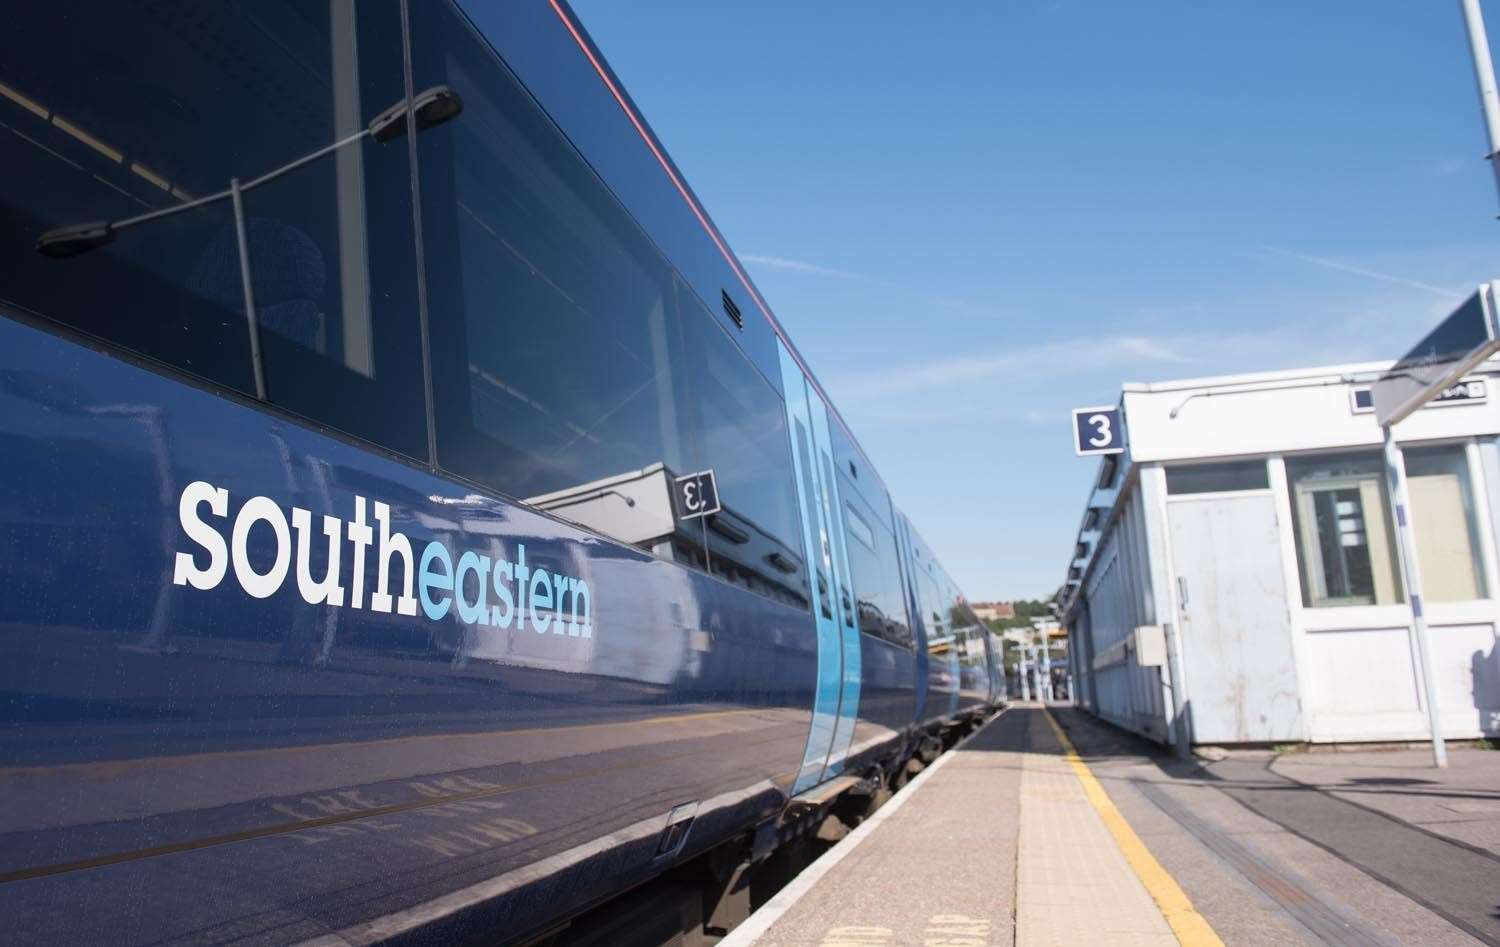 Southeastern trains have been suspended due to poor rail conditions. Stock image